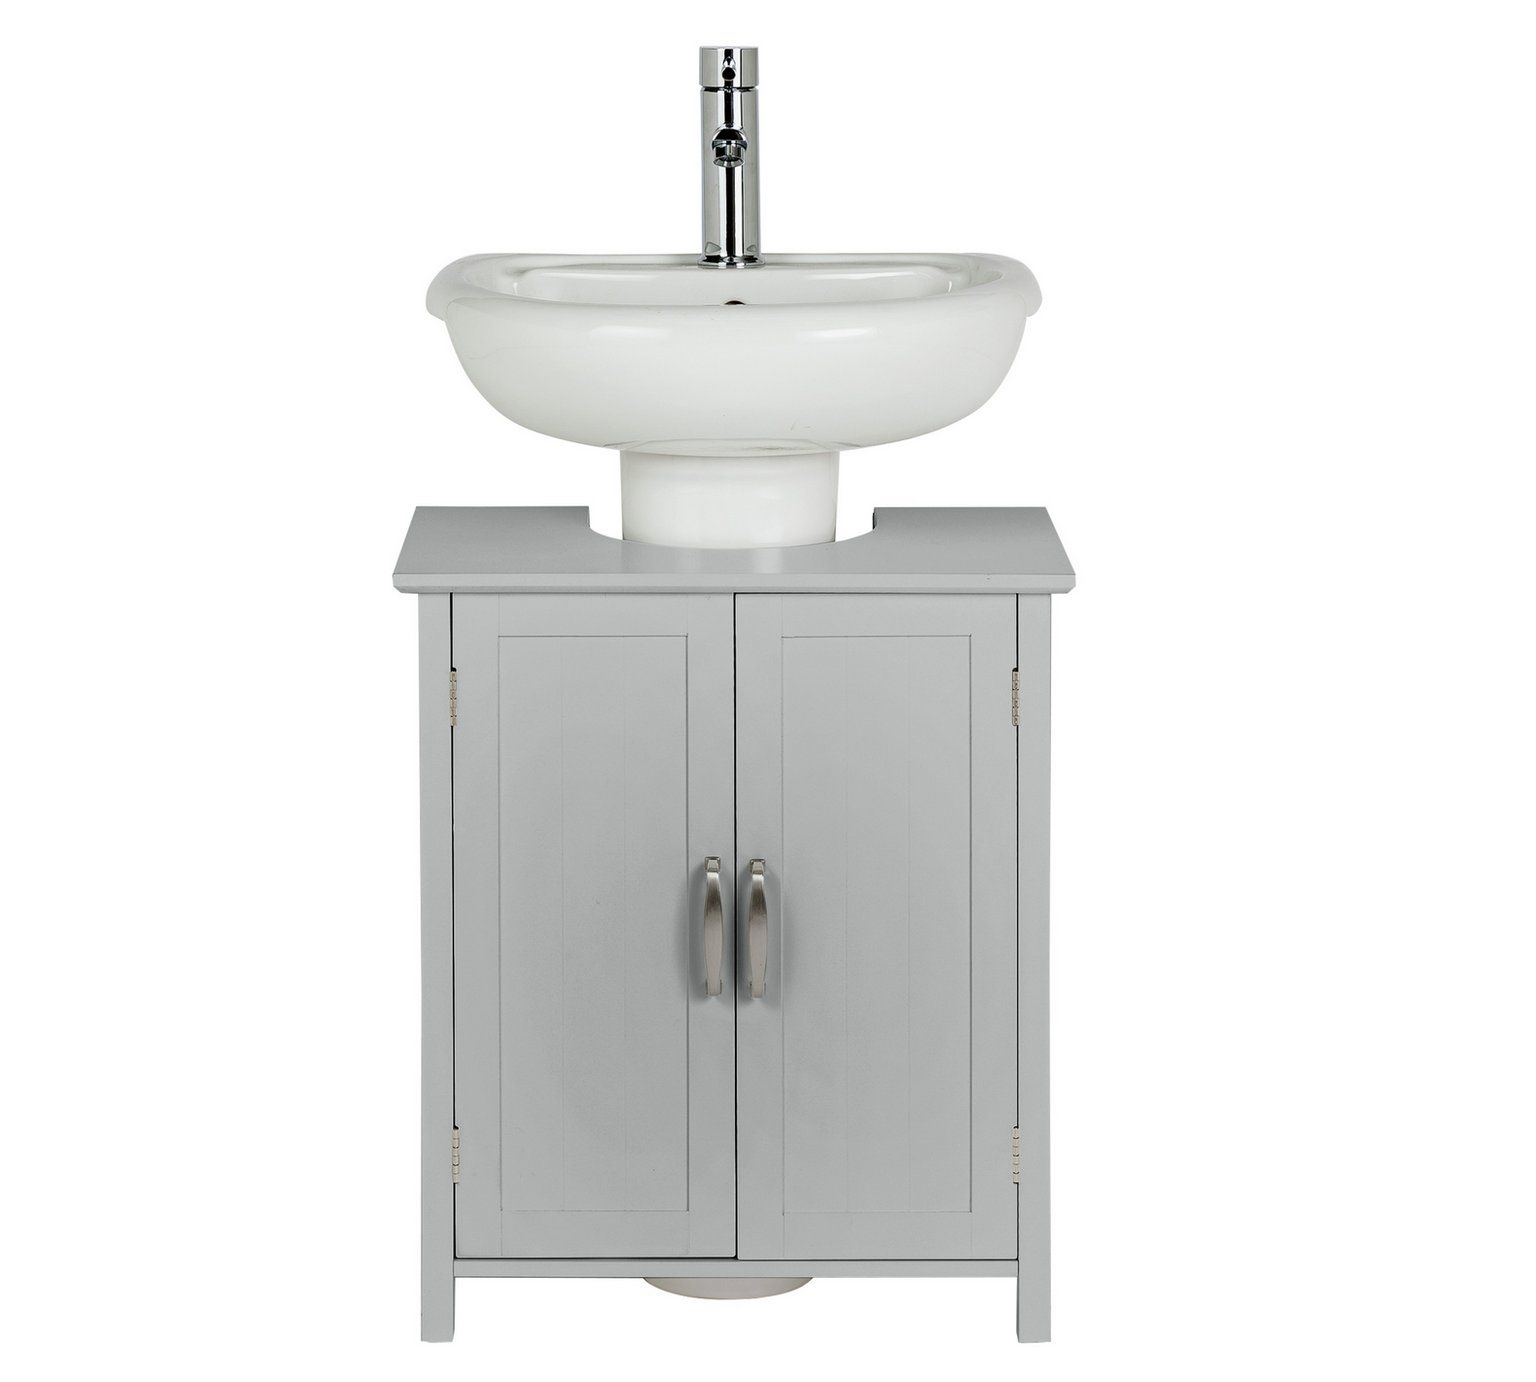 Super Home Tongue And Groove Undersink Storage Unit Grey Home Interior And Landscaping Ologienasavecom